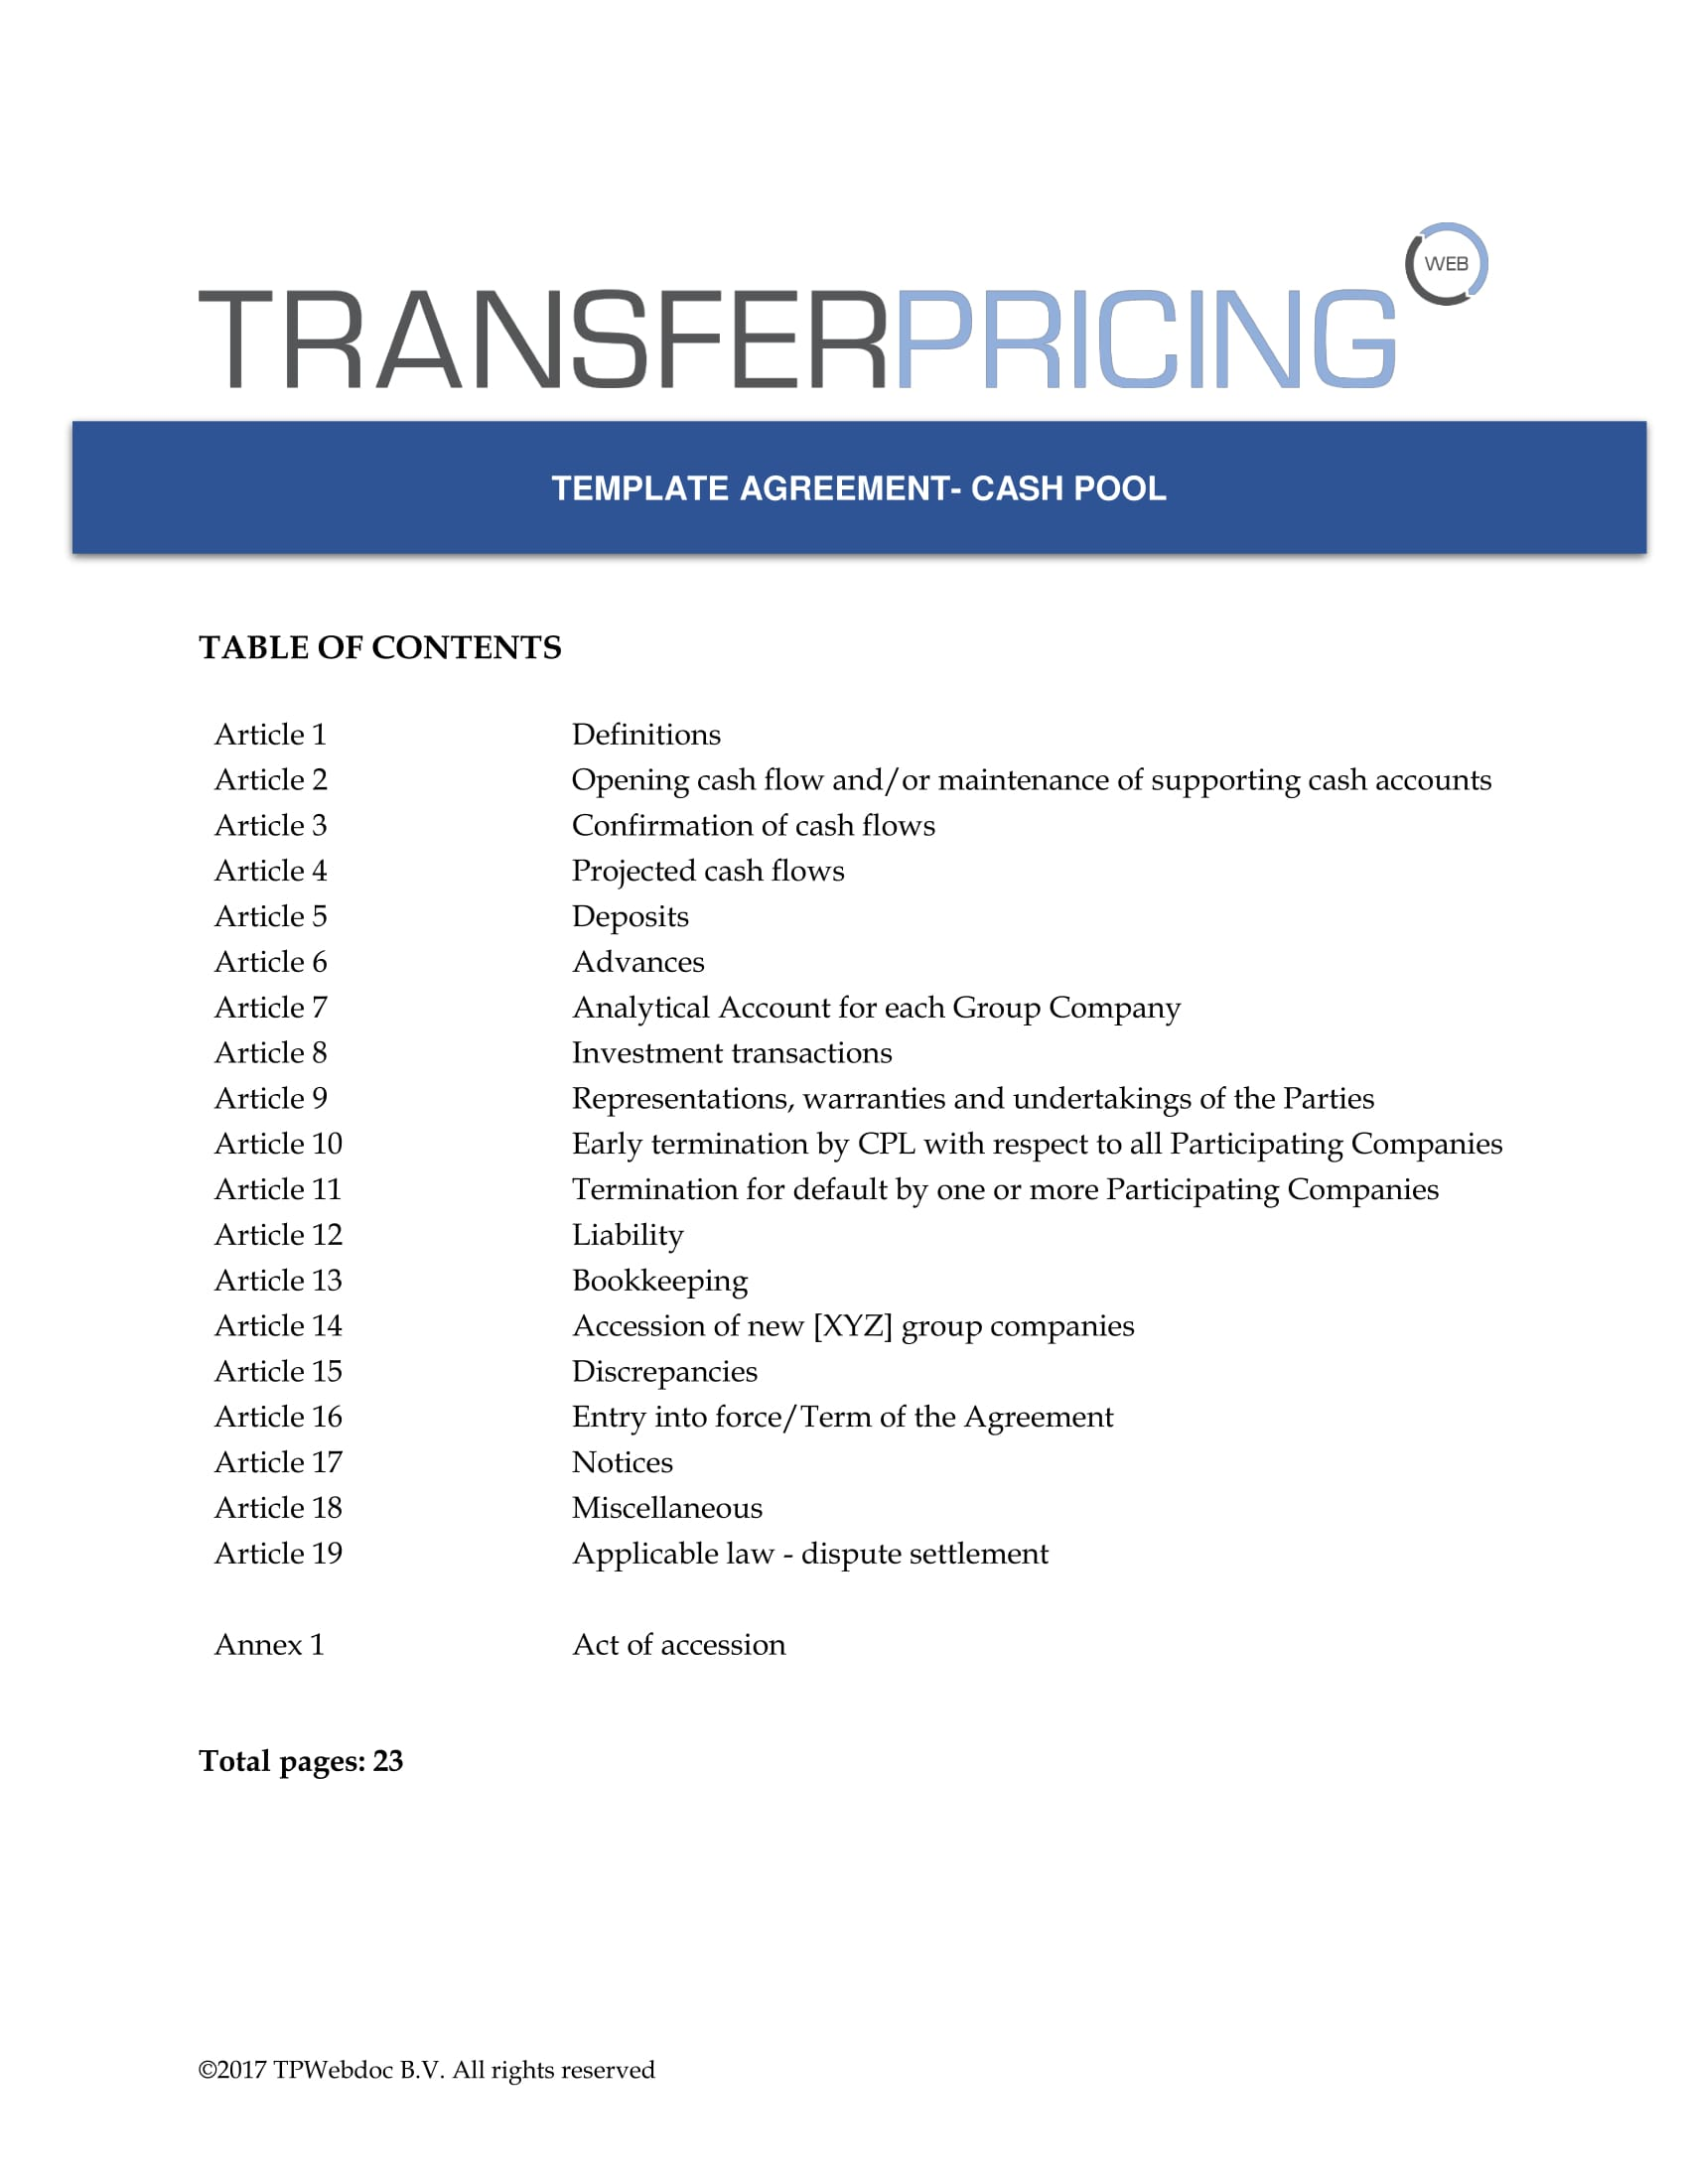 transfer pricing agreement template - cash pooling agreement zero balancing cash sweeping